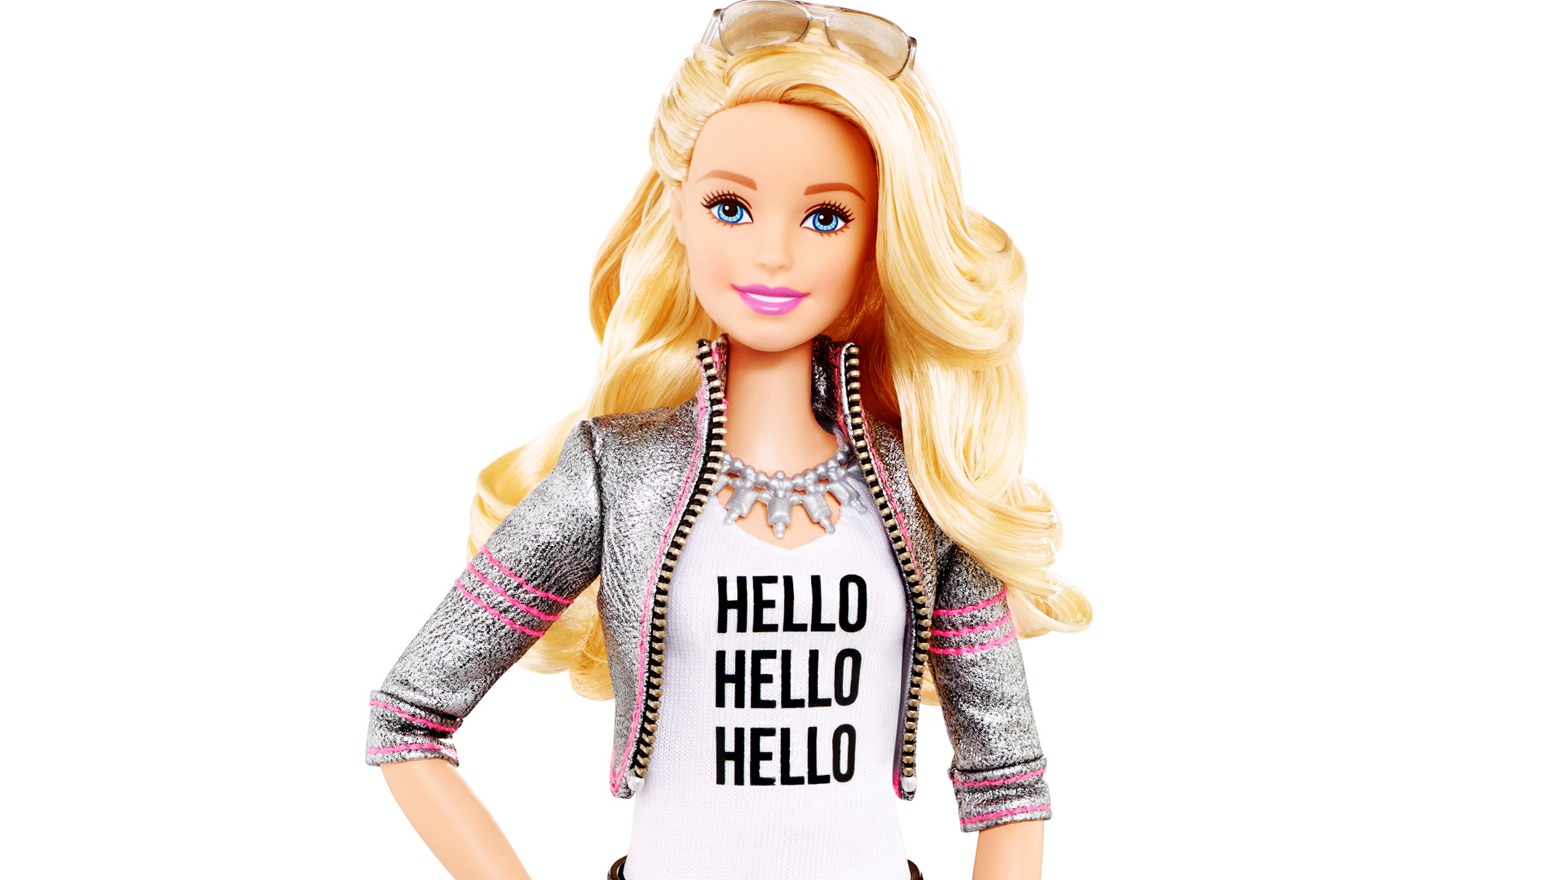 Hello Barbie has a microphone, speaker, and WiFi connection